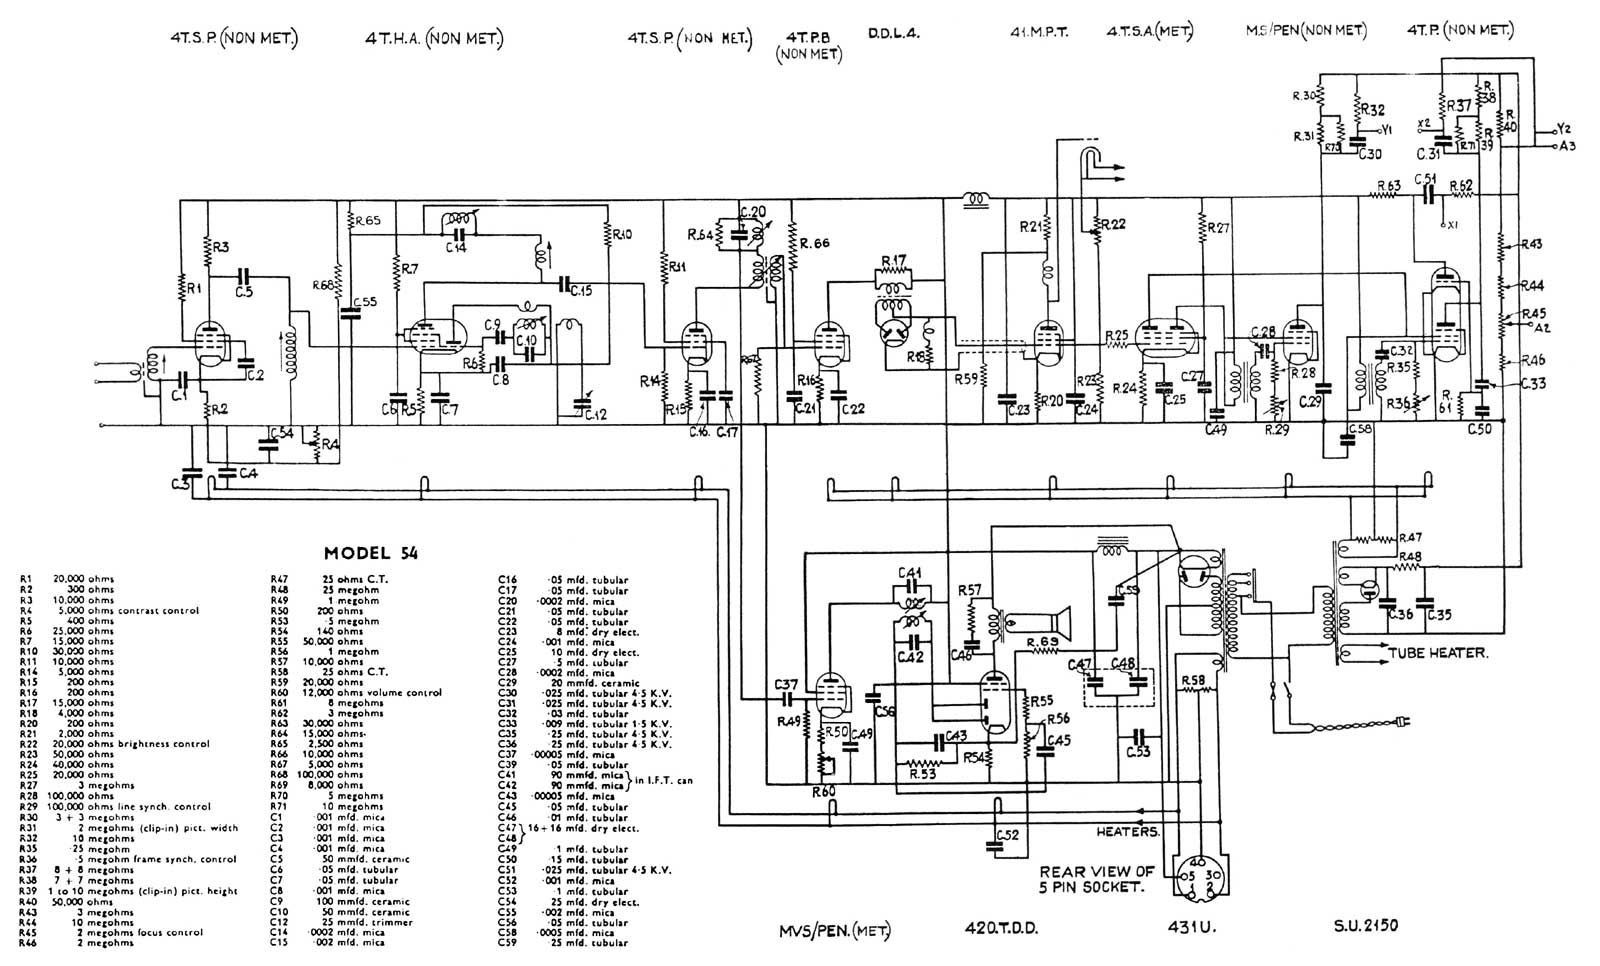 Emerson Tv Schematics